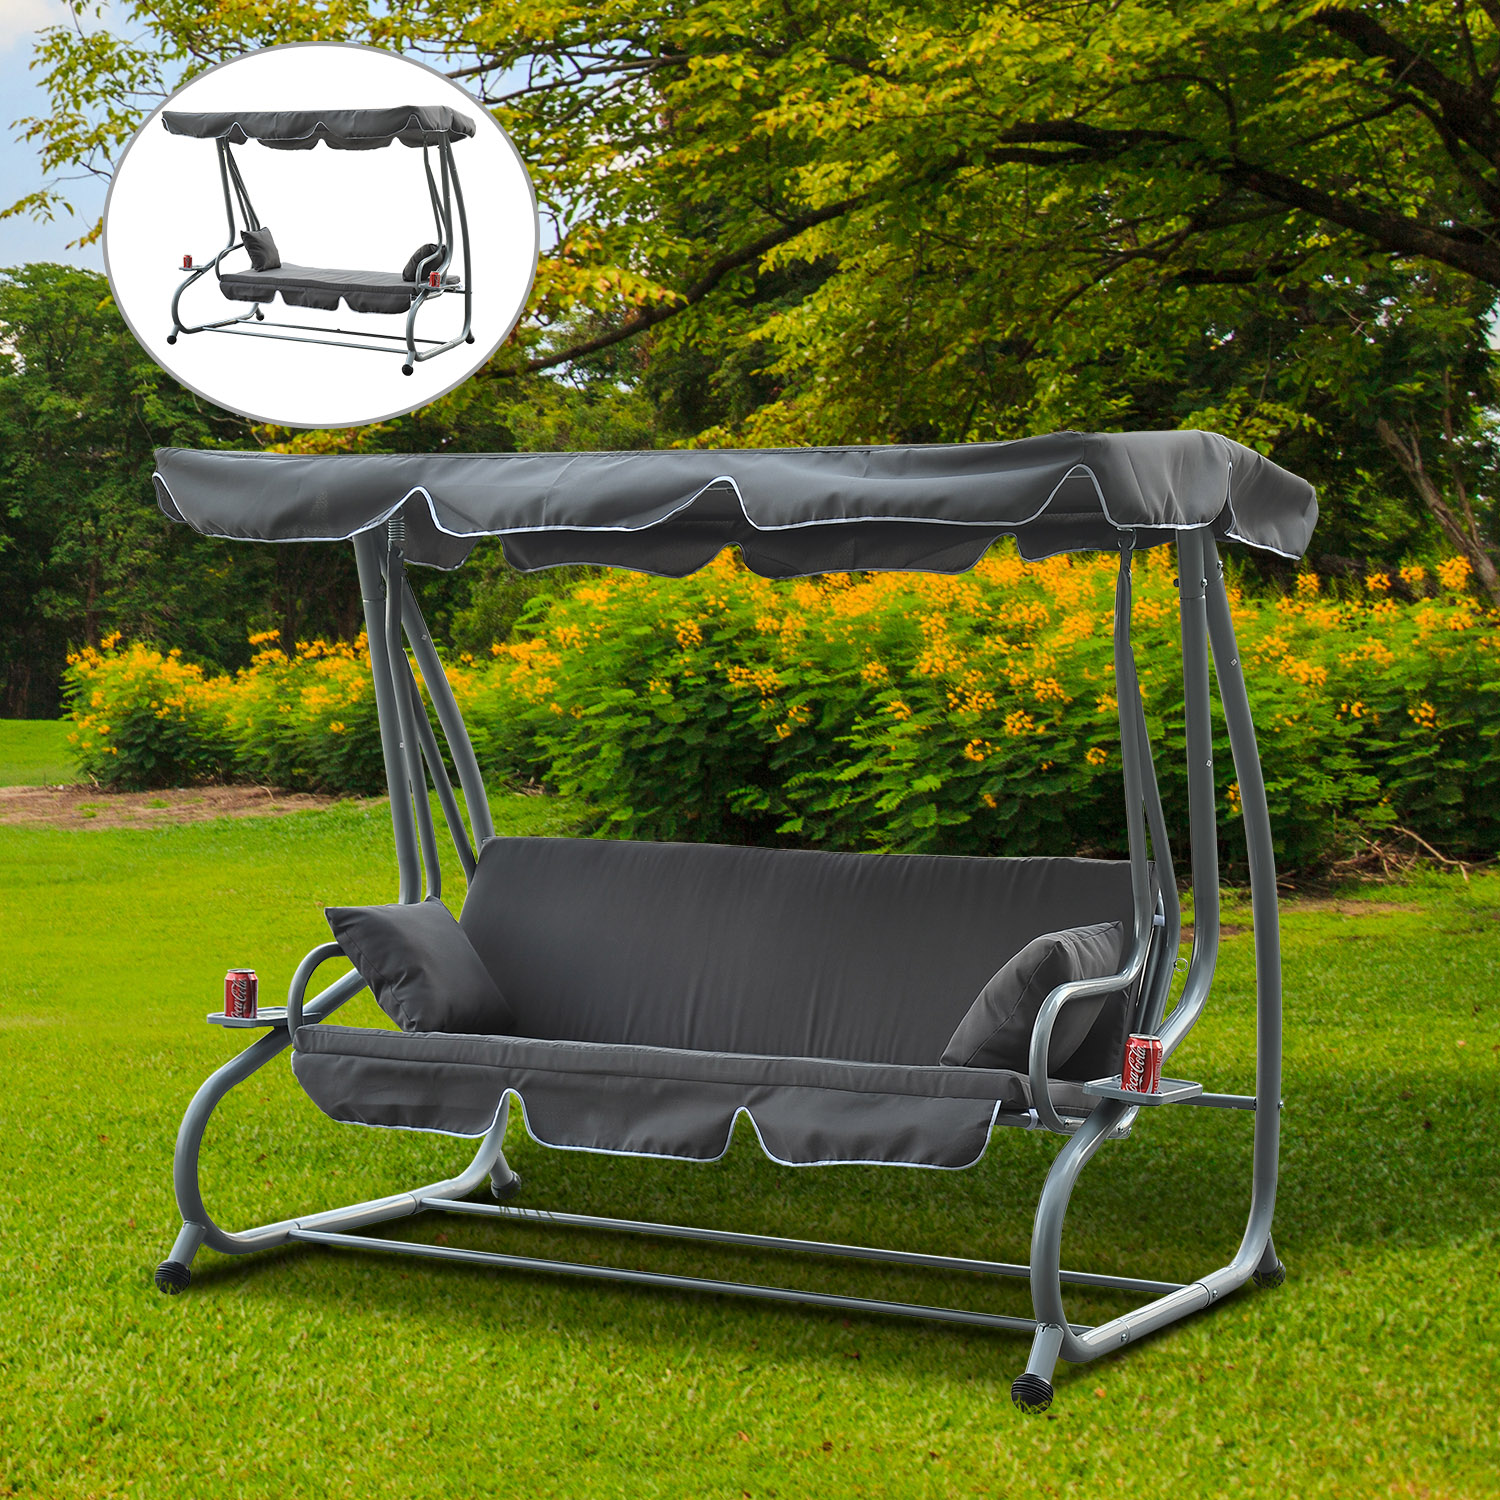 Outsunny Heavy Duty 3 Seater Covered Outdoor Swing Chair Garden